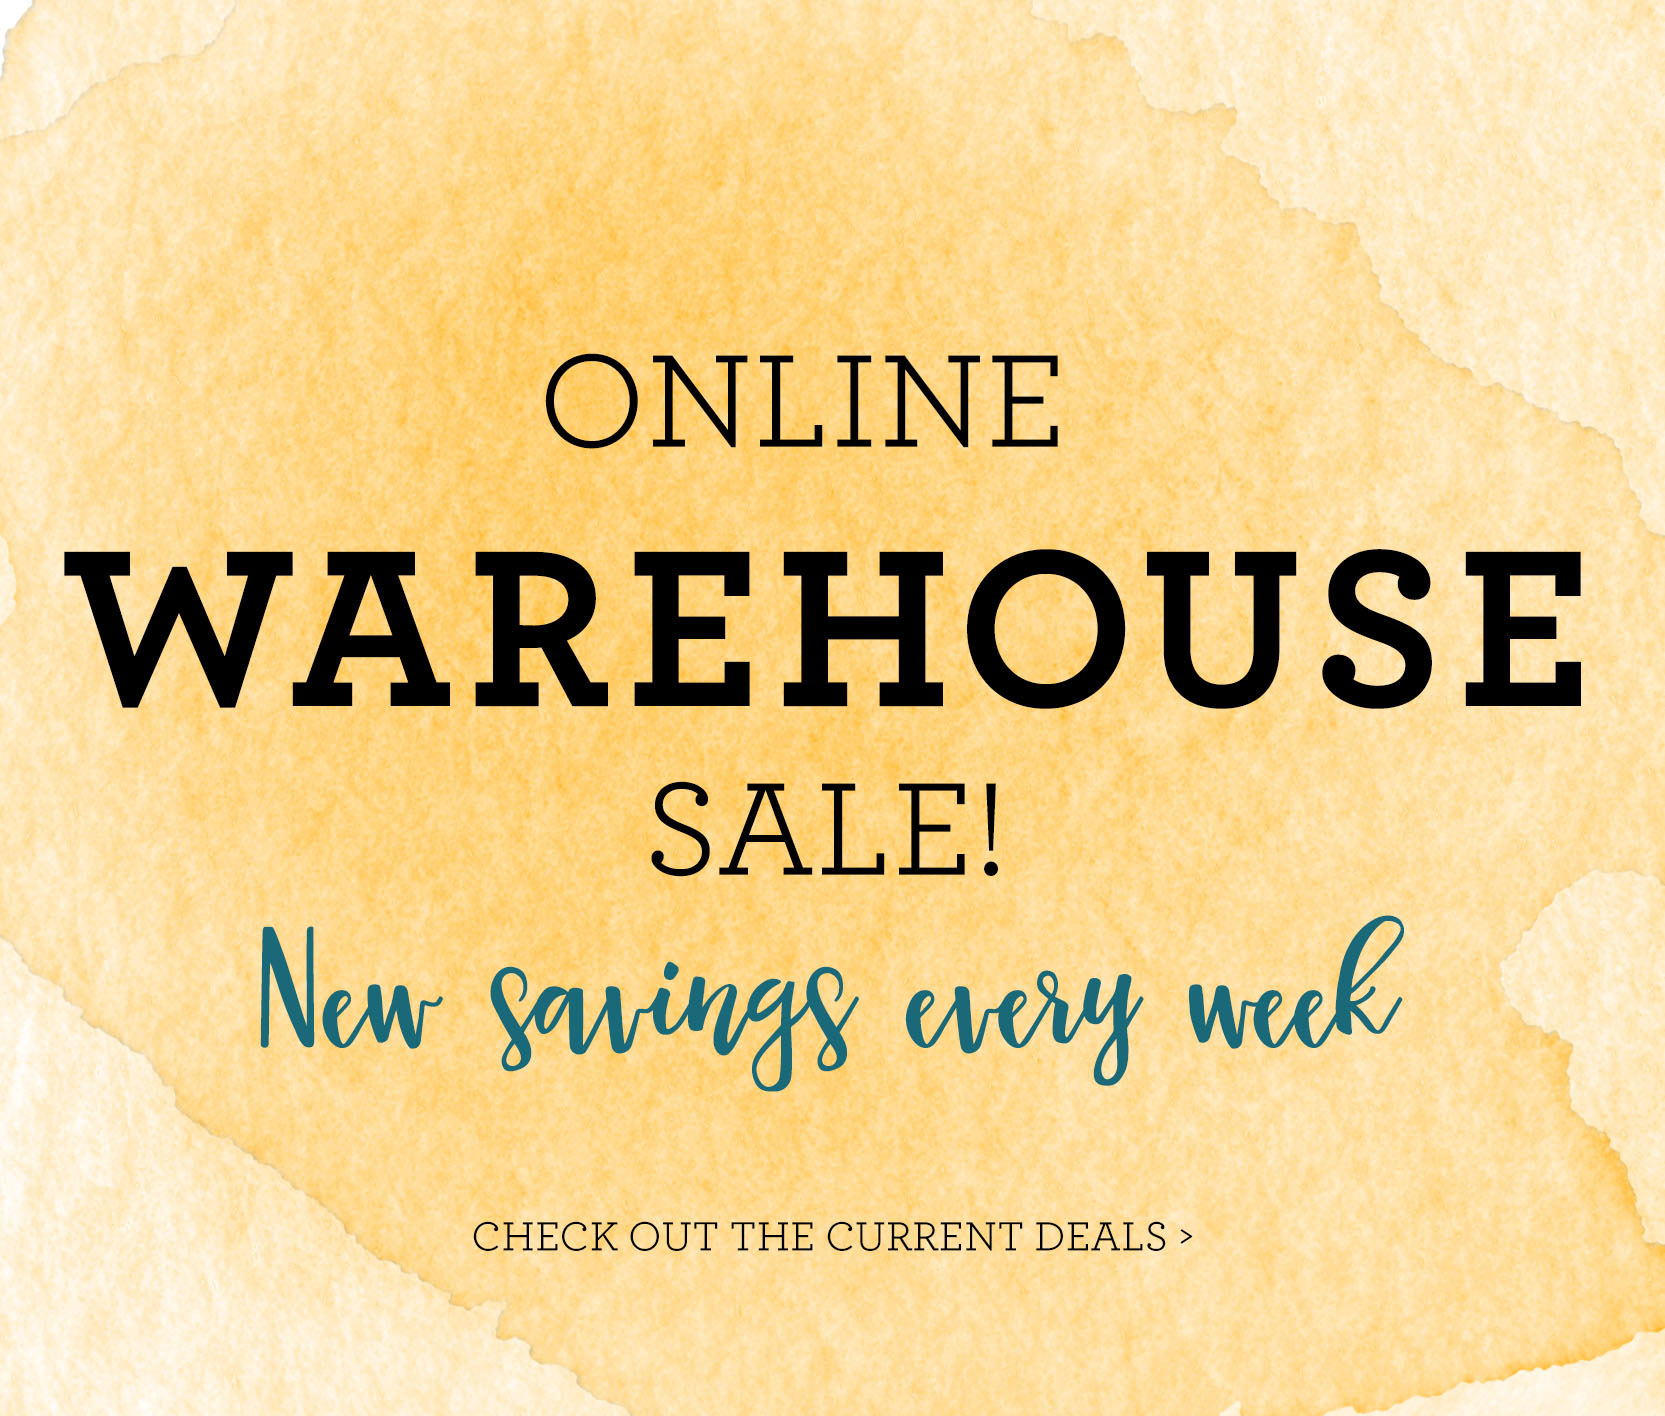 ONLINE WAREHOUSE SALE!!